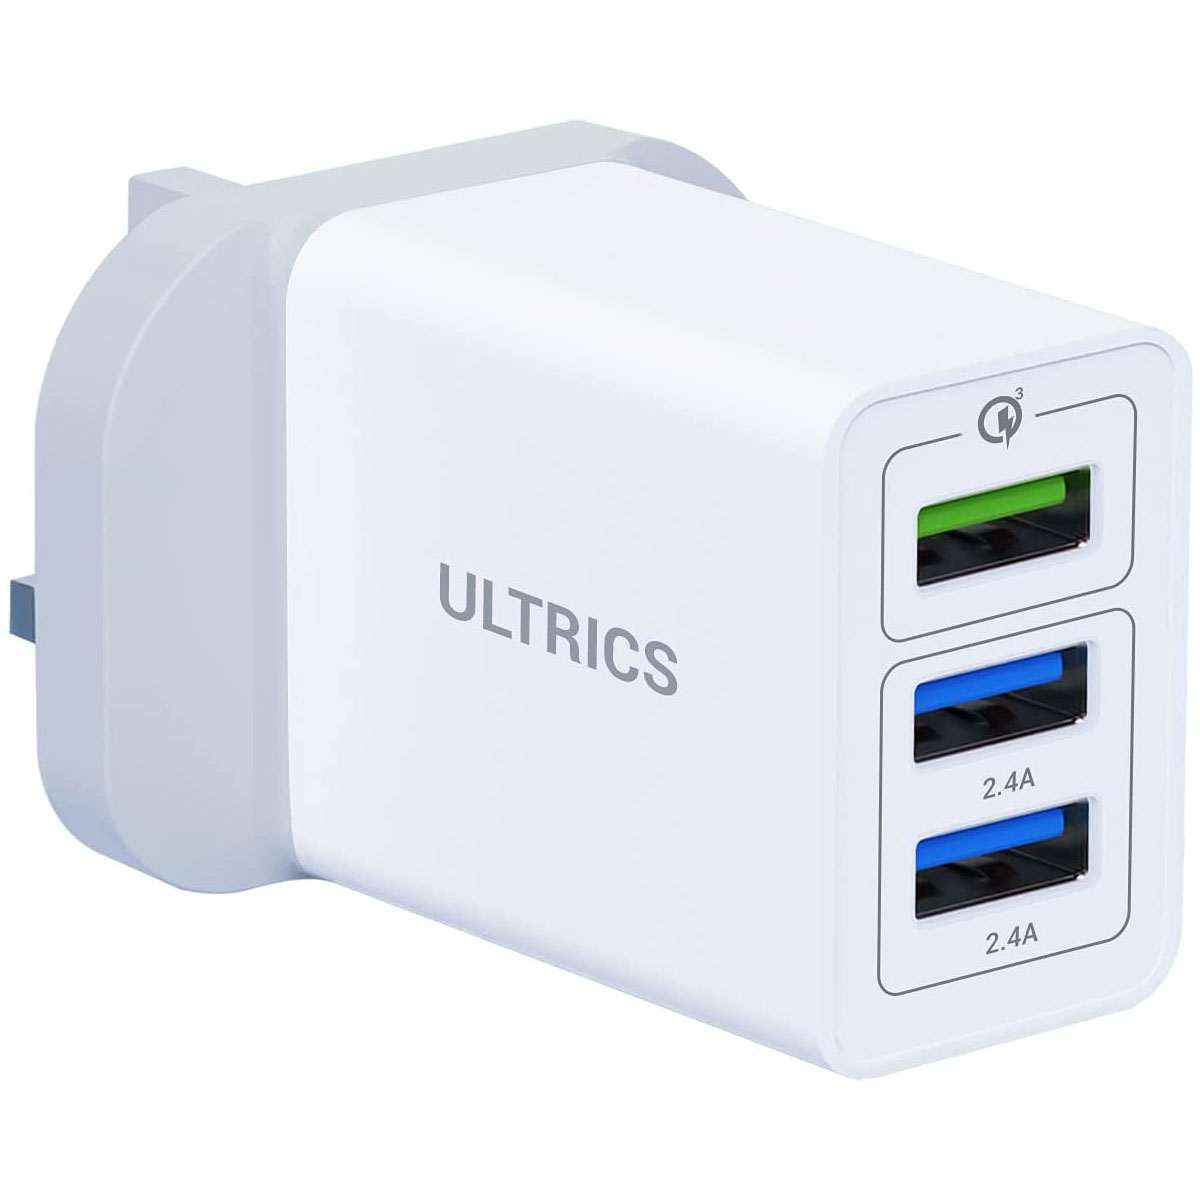 USB Plug Charger, 30W/6A 3 Port Fast Charging Mains Wall Charger Adapter